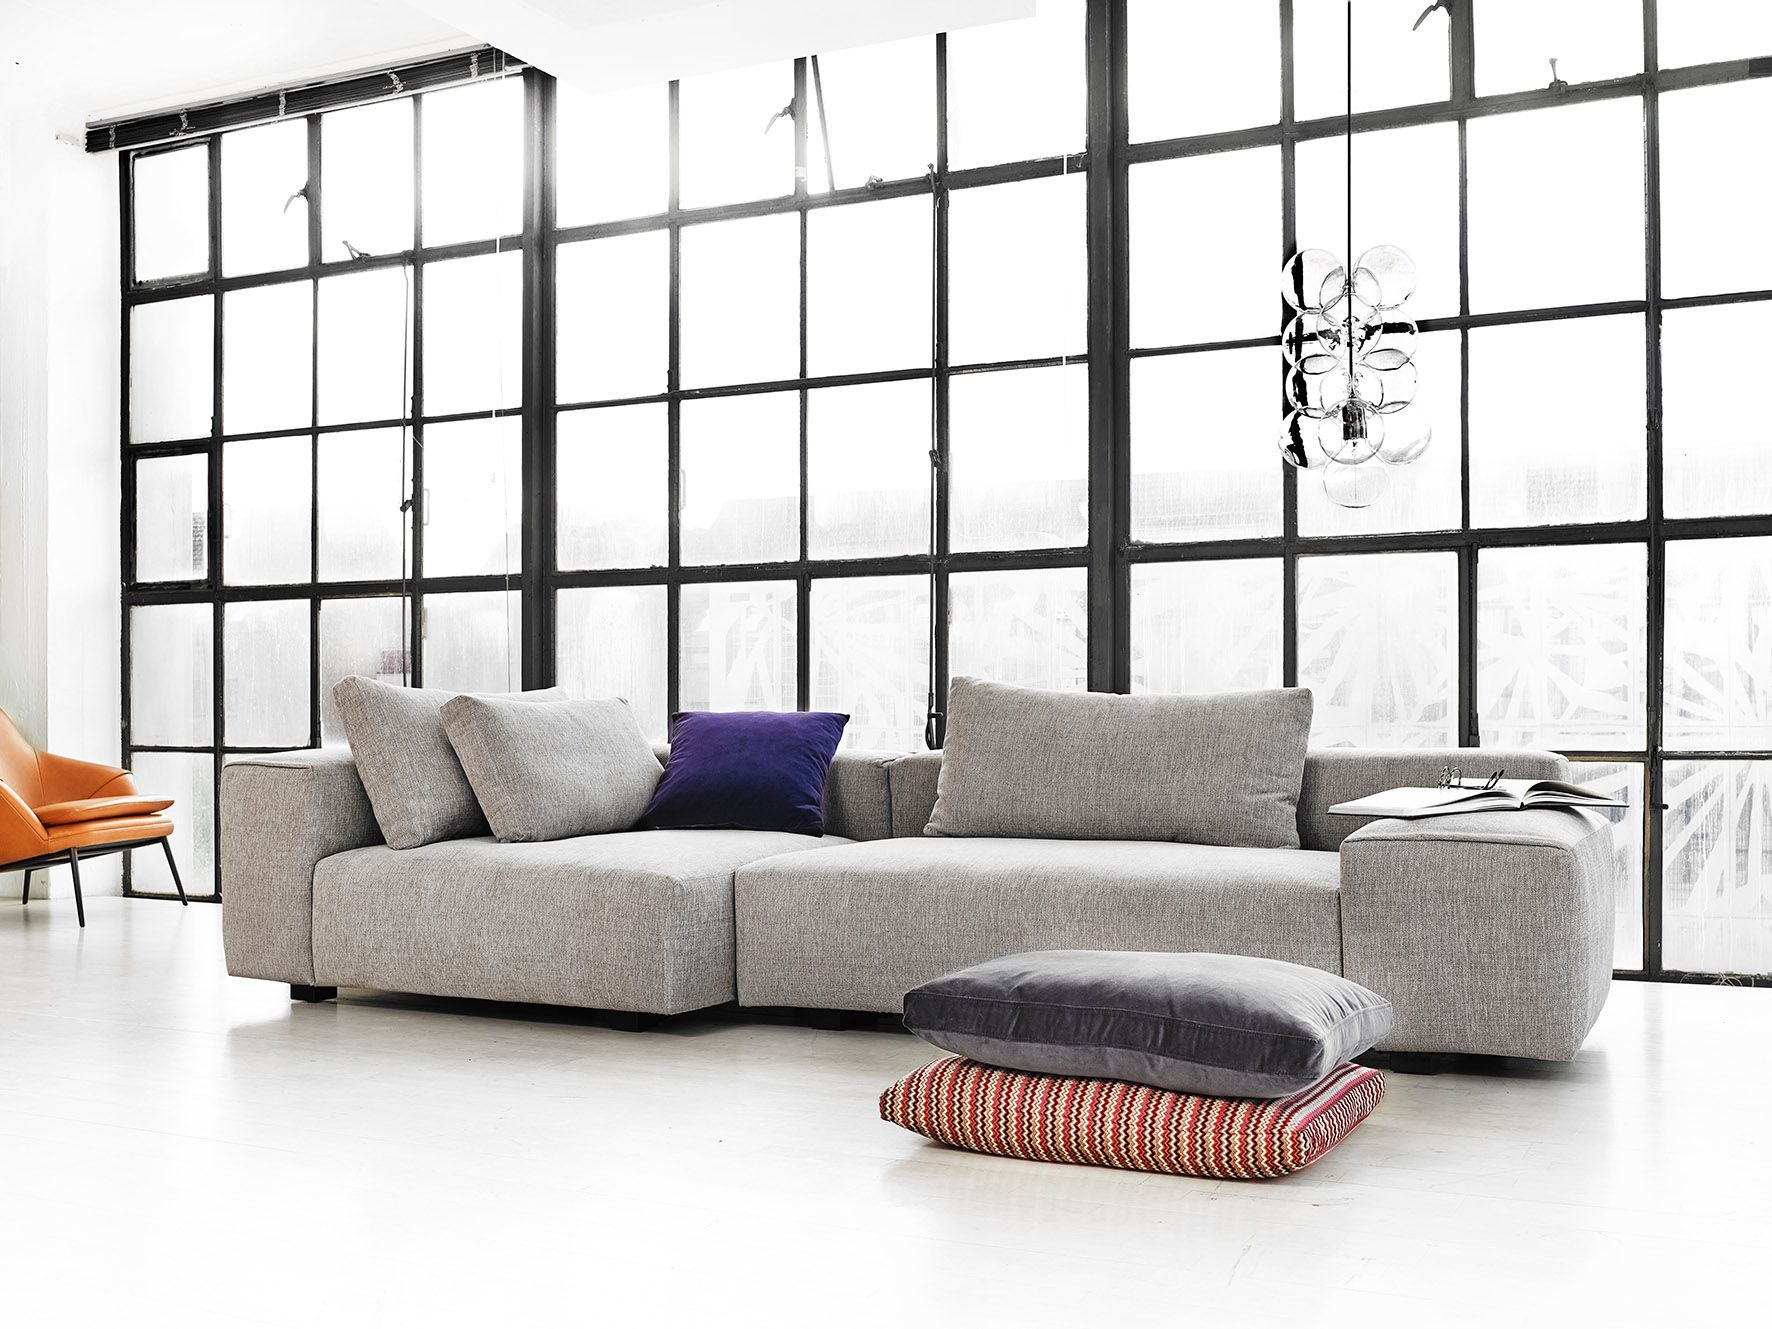 Discover All The Information About The Product Modular Sofa / Contemporary  / Leather / Fabric RAFT By North   Wendelbo And Find Where You Can Buy It.